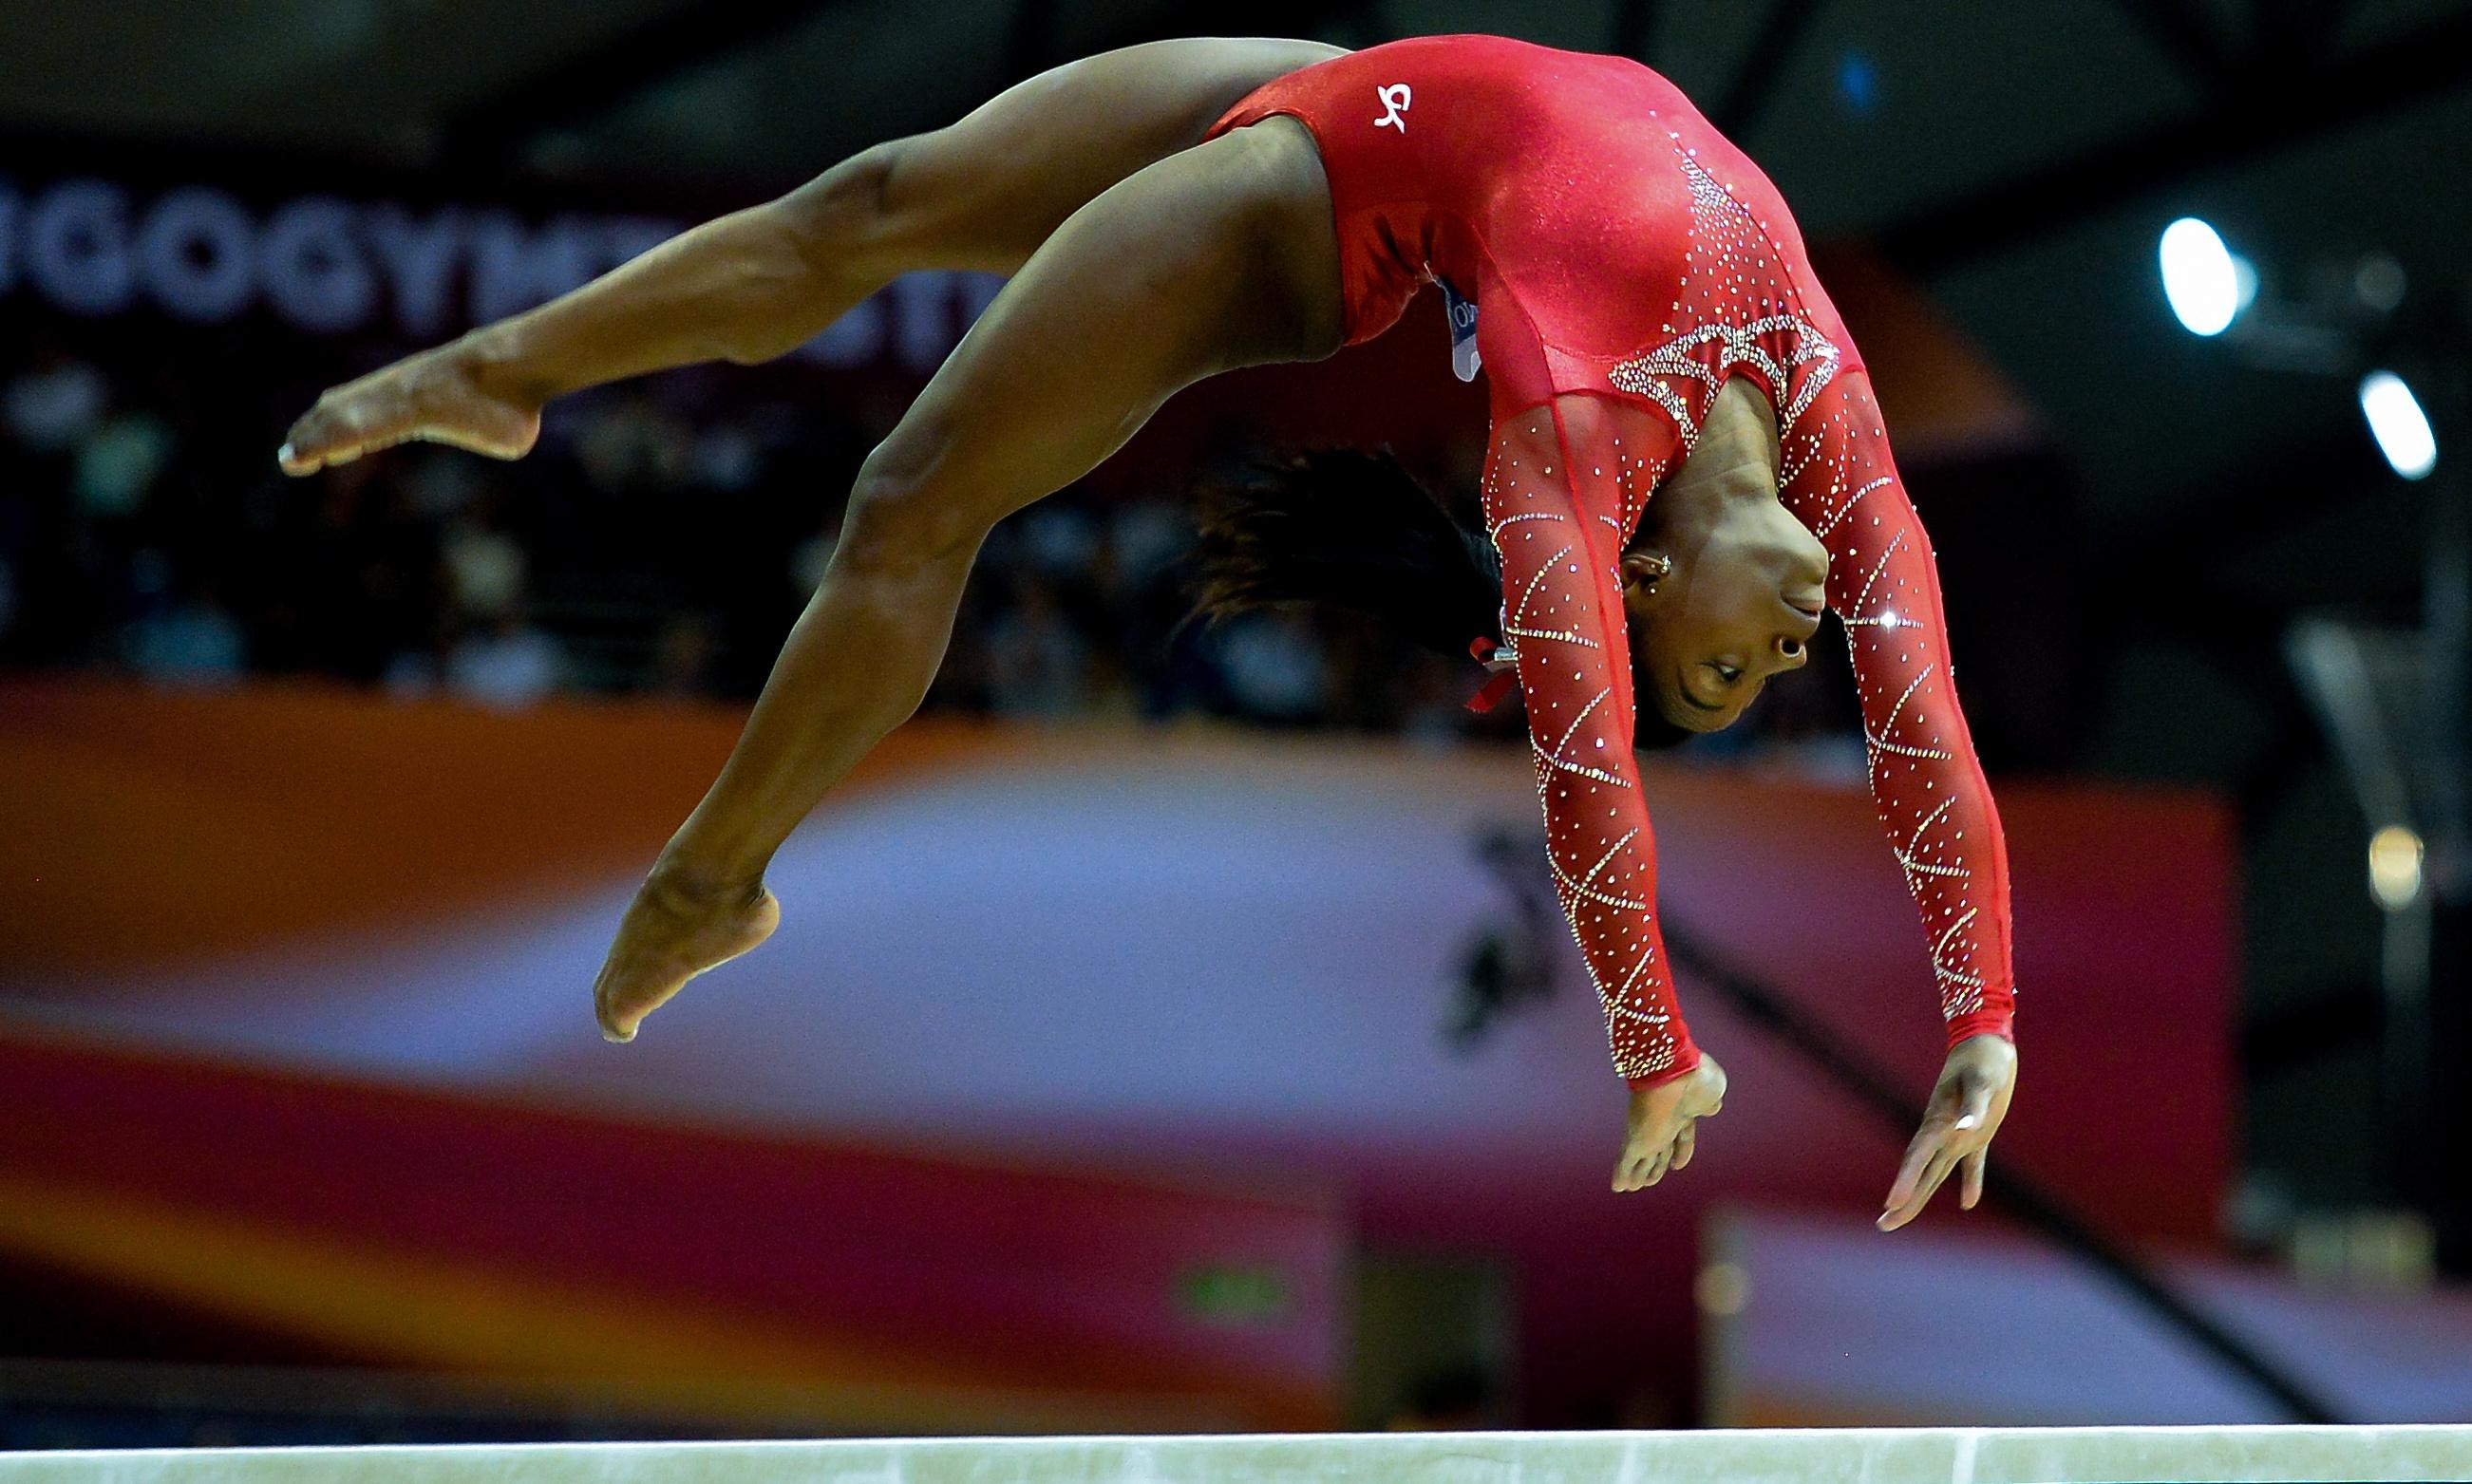 To say Simone Biles is America's greatest athlete is an undersell